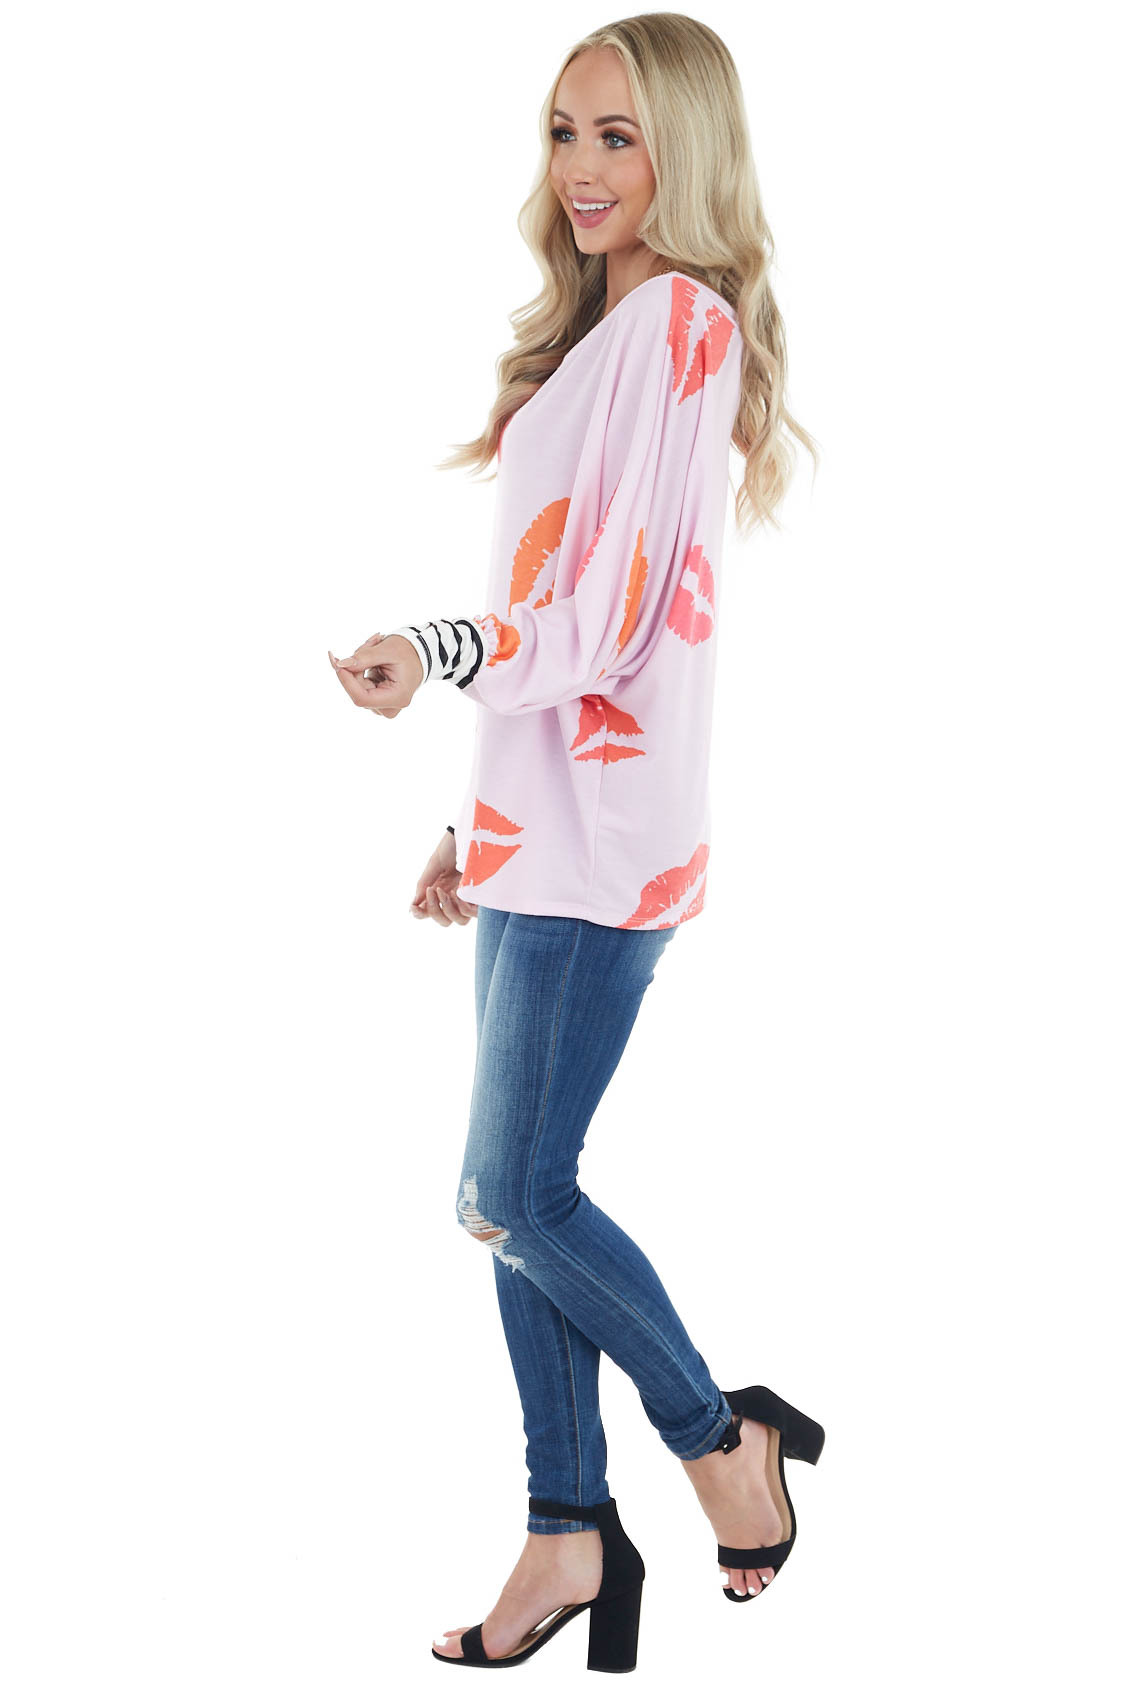 Blush Oversized Lip Print Top with Striped Cuff Details